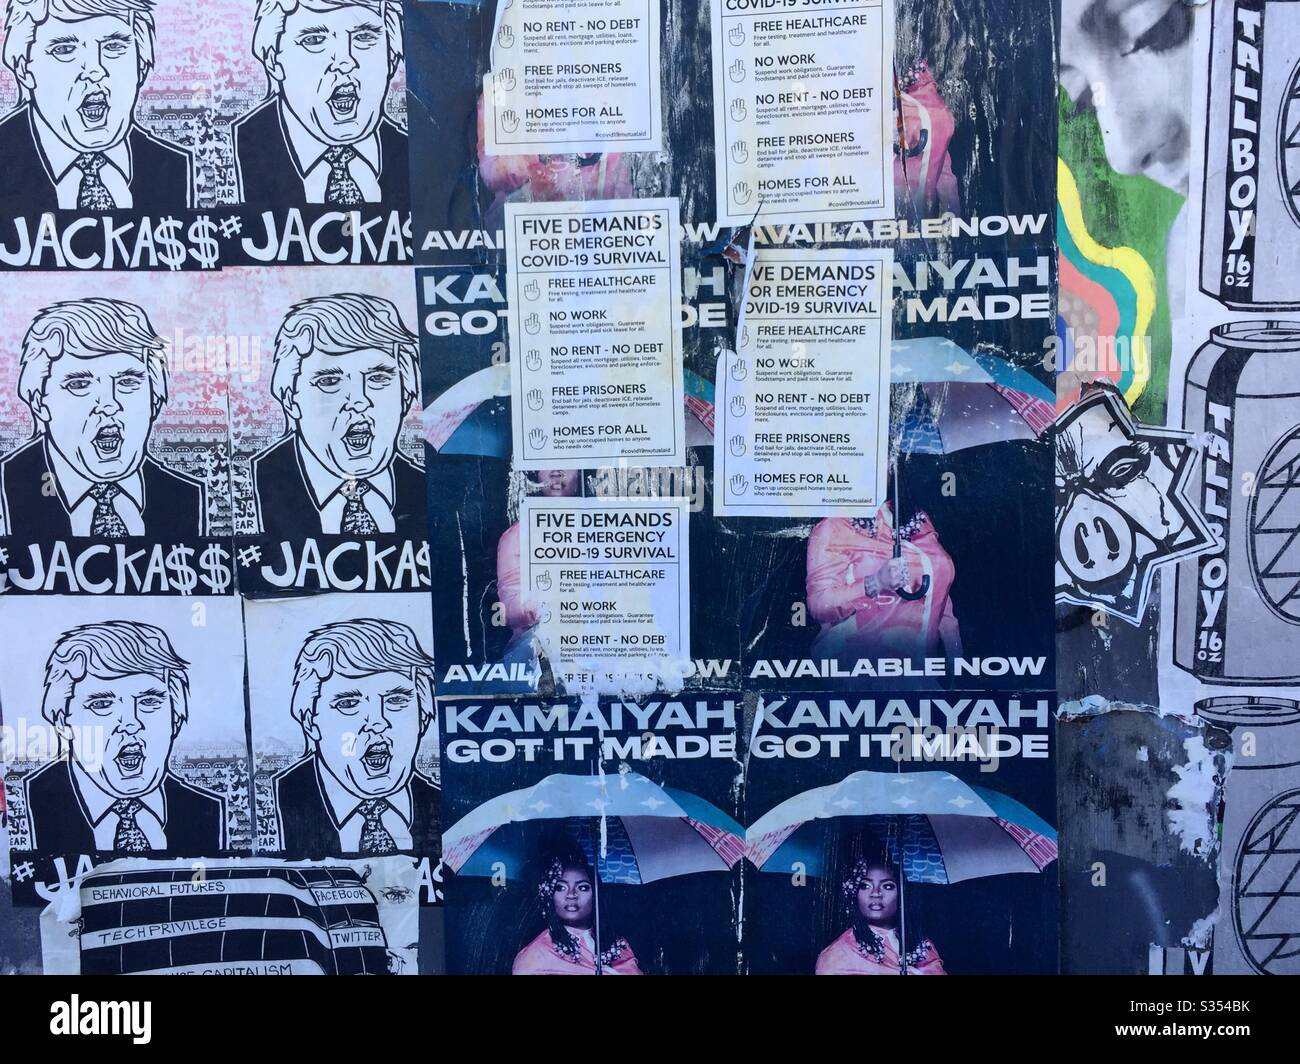 Postered wall which includes anti-Trump JackAss artwork, Coronavirus demands and Kamaiyah Got It Made poster. Oakland, California Stock Photo